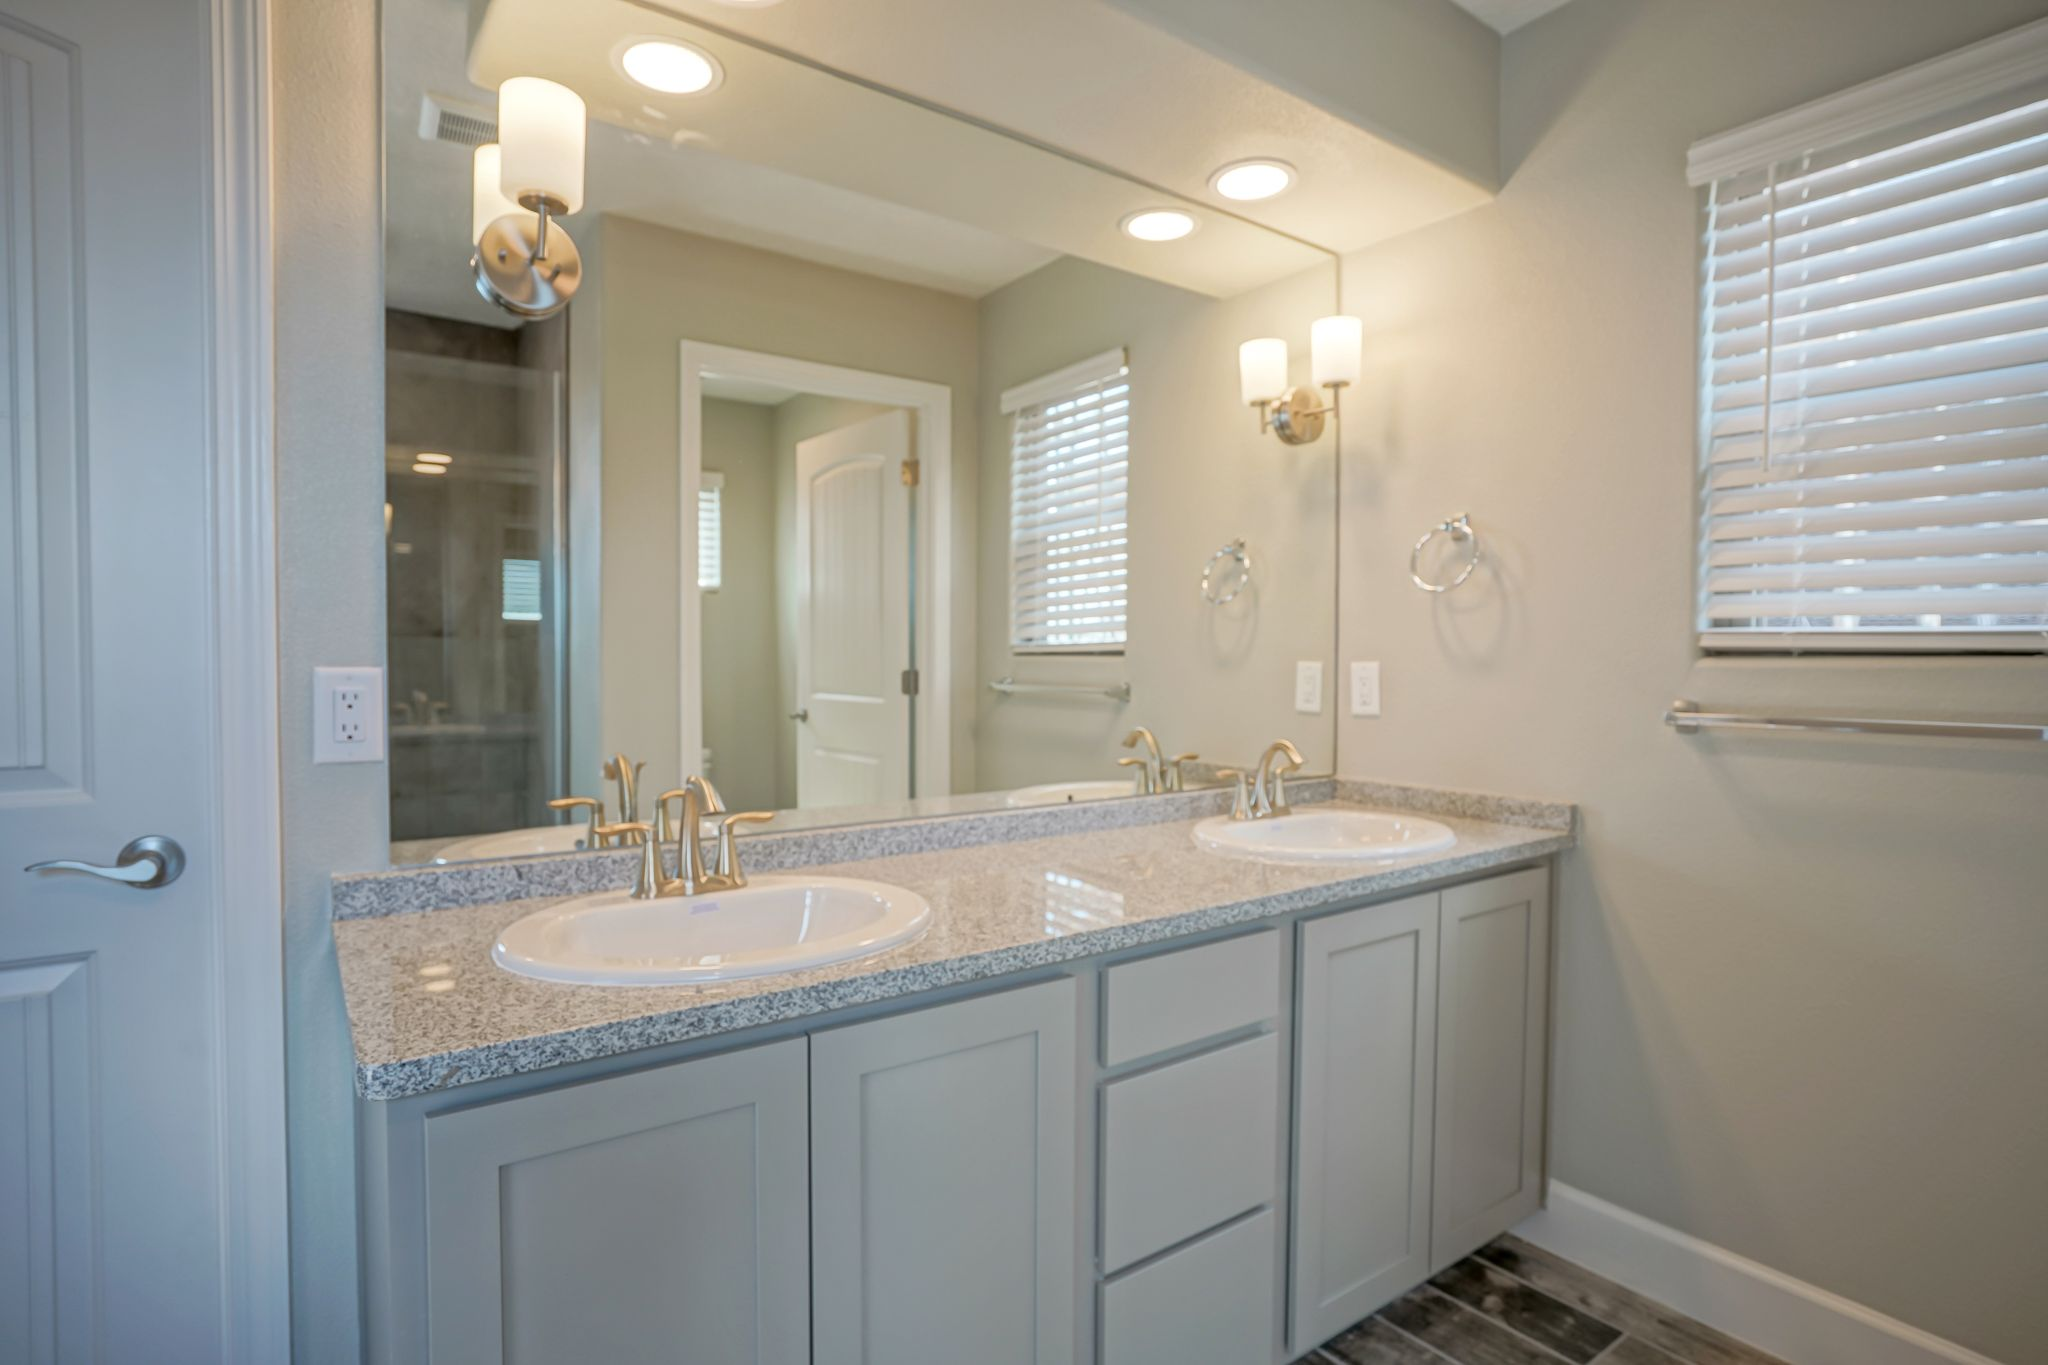 Bathroom featured in the Loreto By Abrazo Homes in Albuquerque, NM